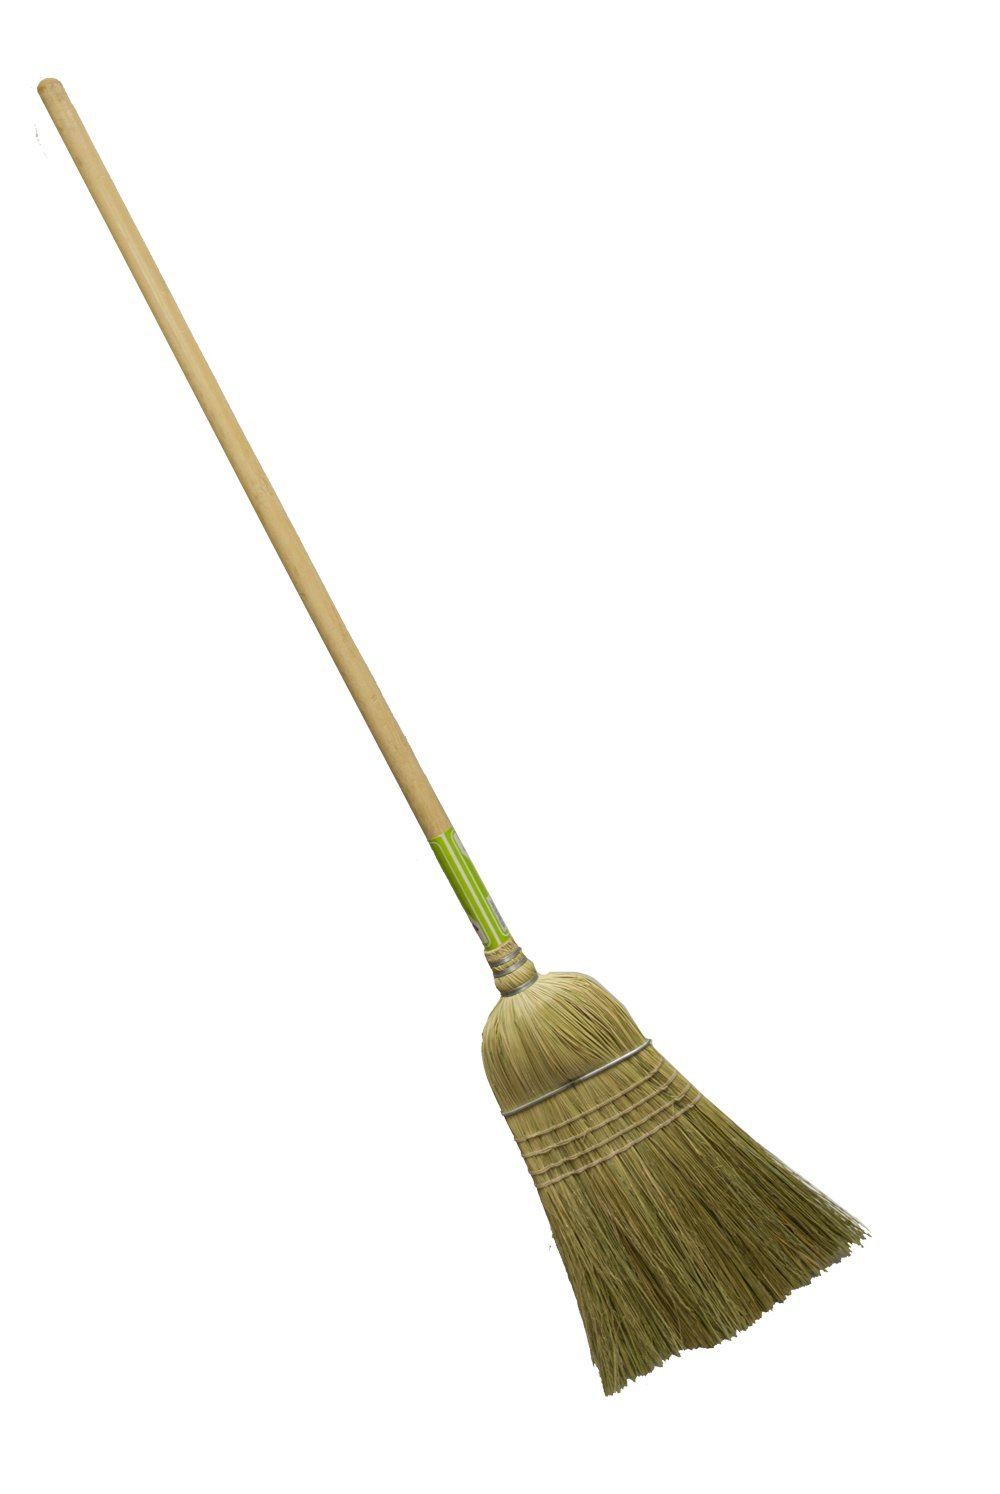 Magnolia Brush 15032-Boxed Corn/Fibre Warehouse Broom with Heavy-Duty Handle (Case of 12)